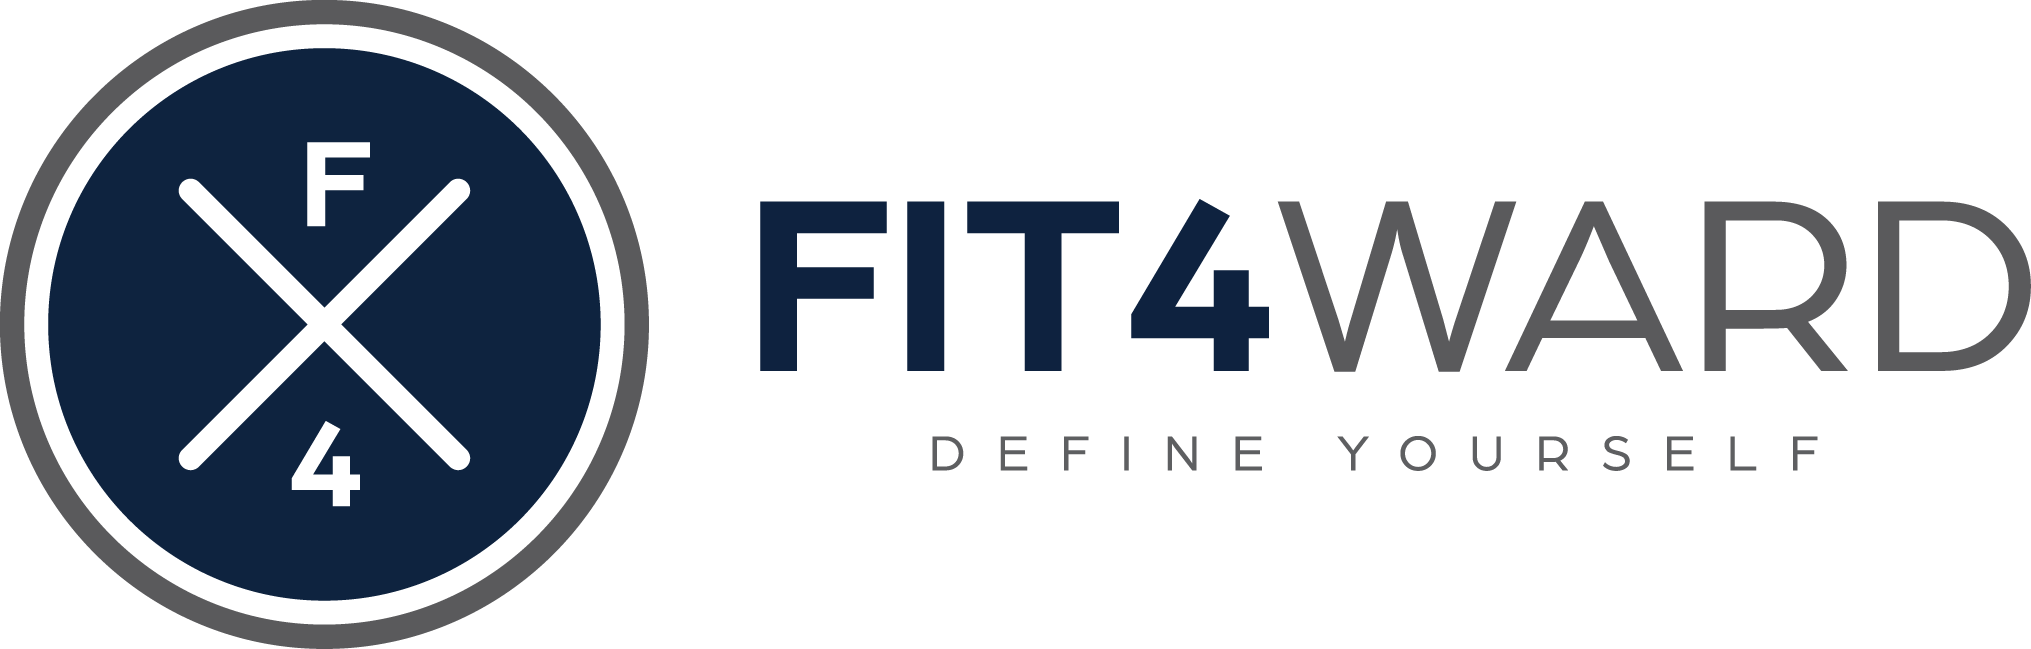 Physical fitness trainer needs a logo refresh